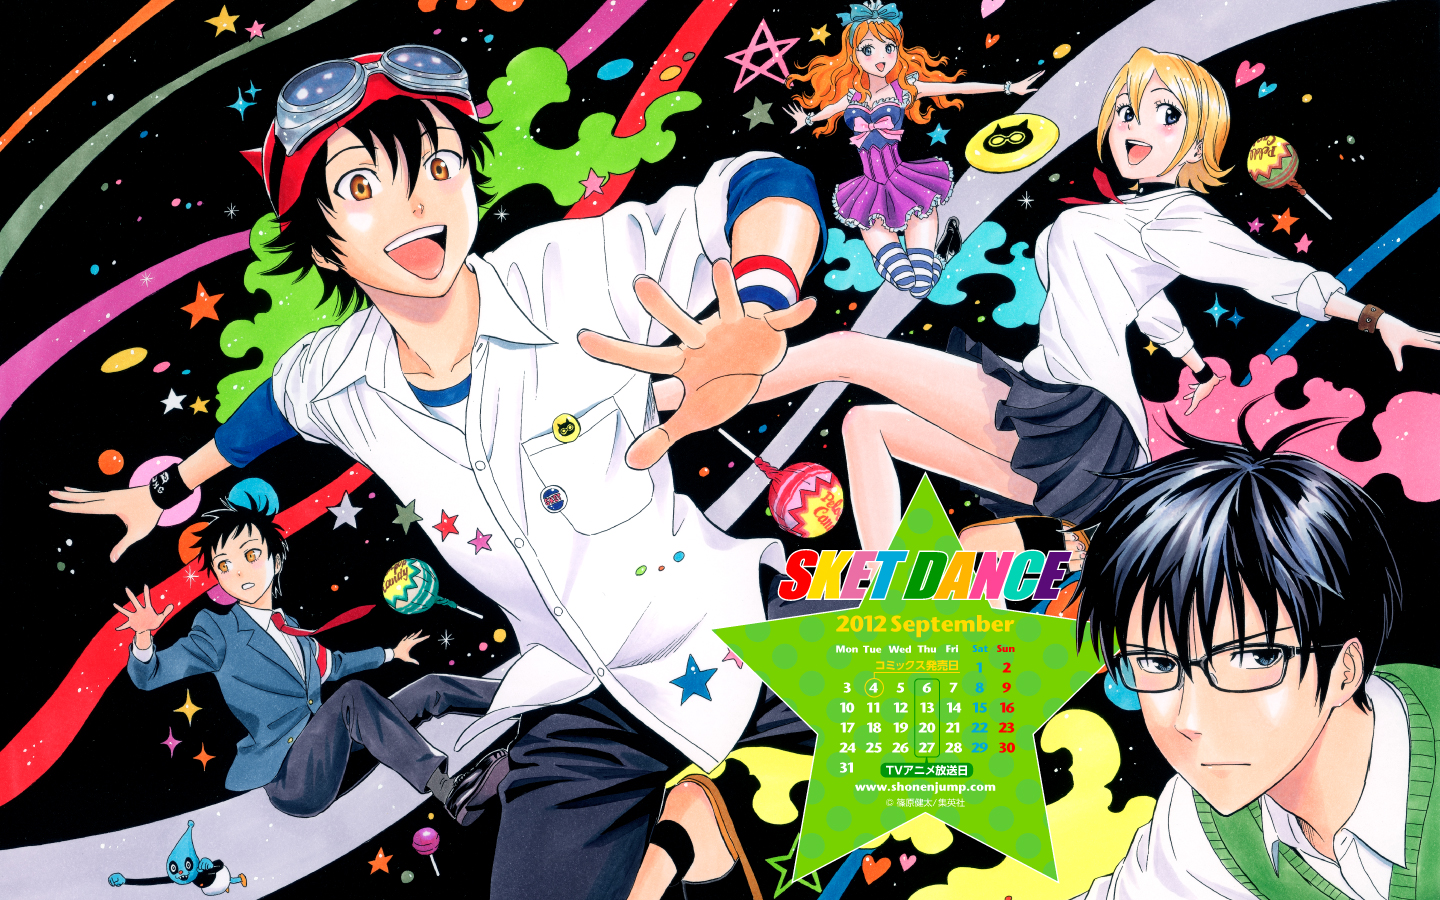 Anime Wallpaper Pc Sket Dance Images スケット・ダンス Hd Wallpaper And Background